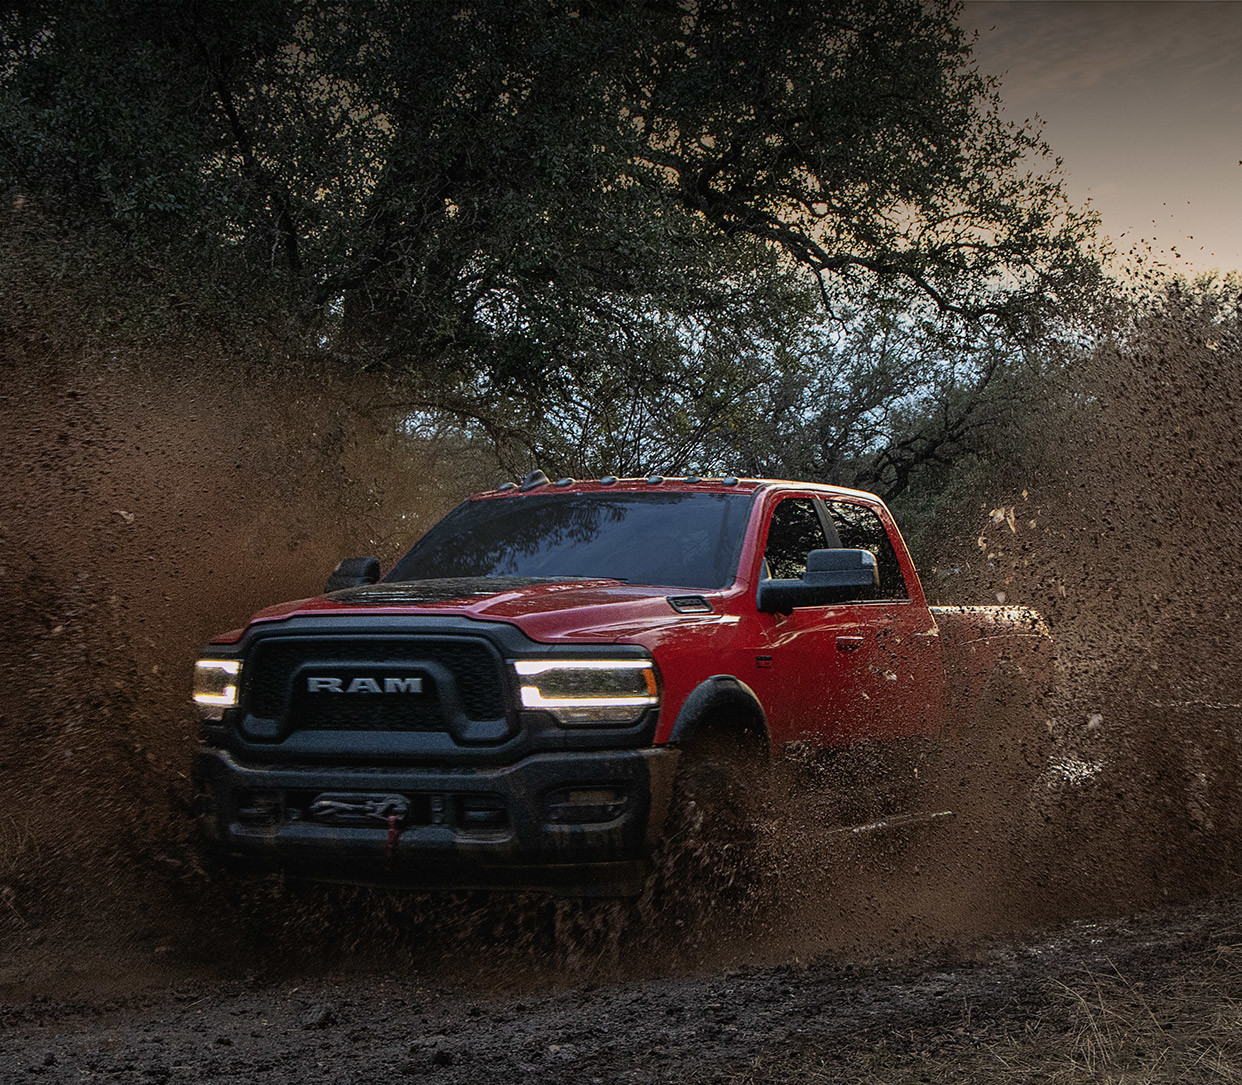 The 2020 Ram 2500 passing the muddy road through trees